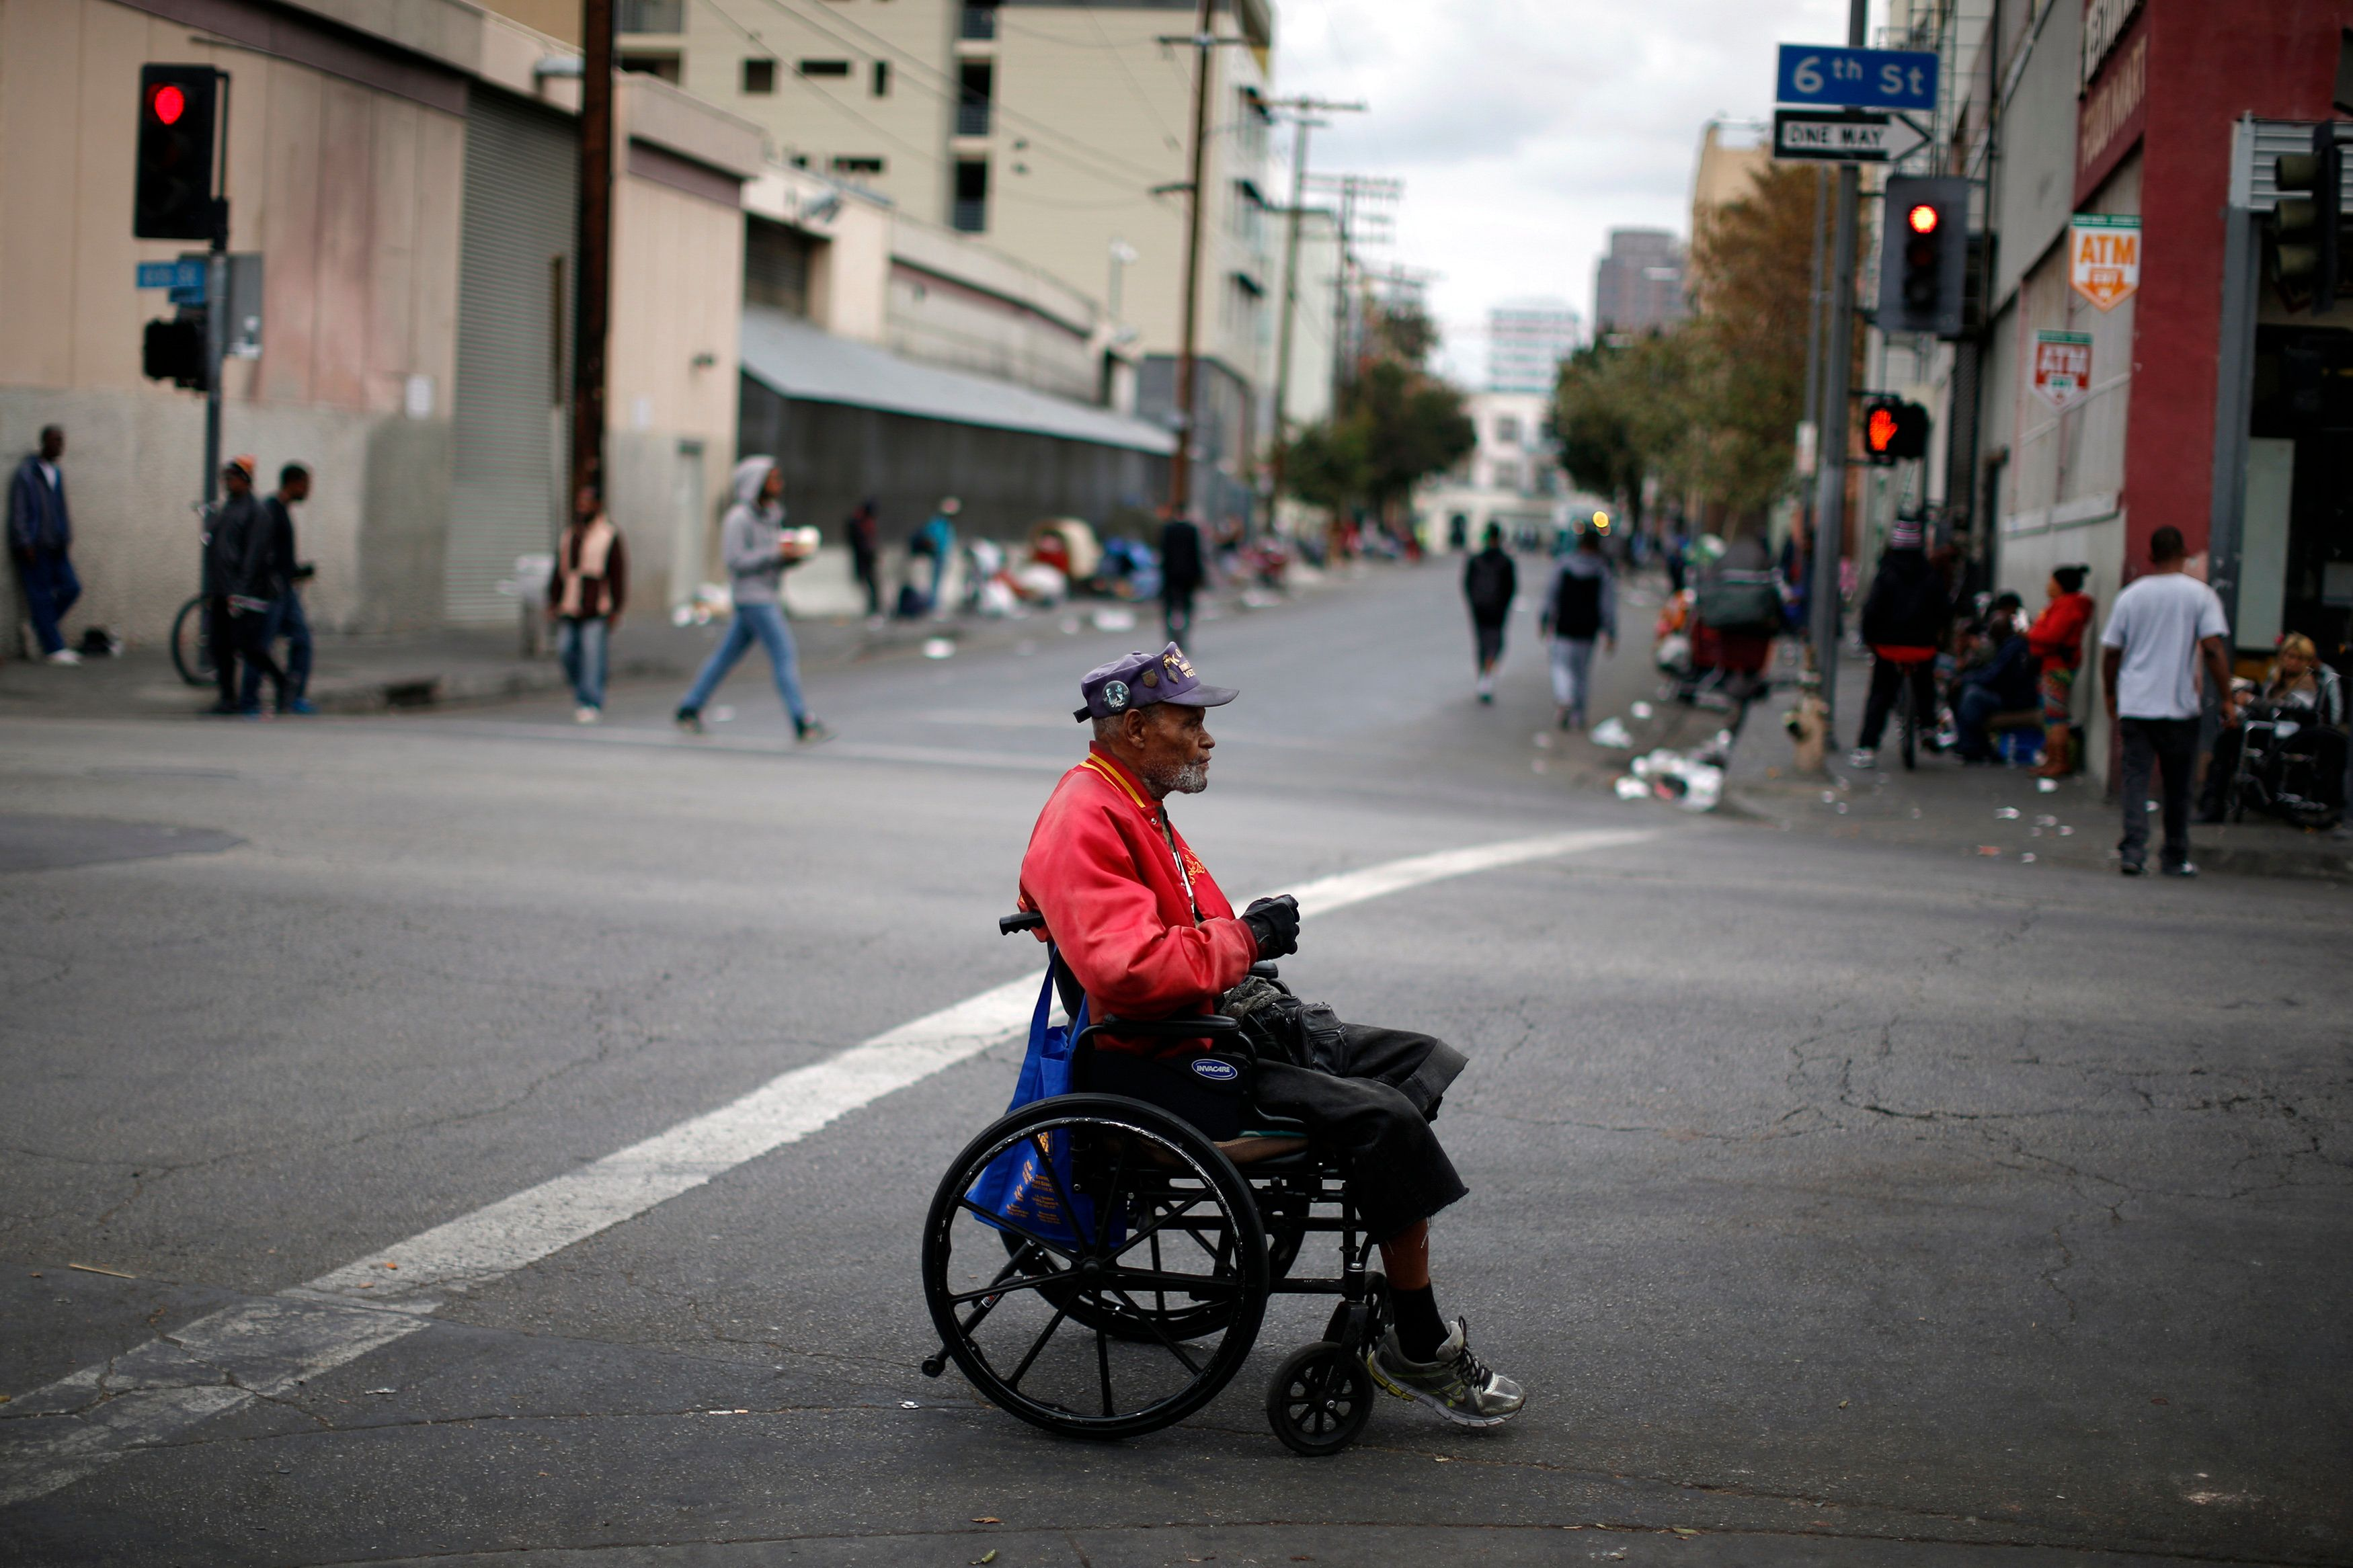 Homeless U.S. marine corps Korean War veteran Arthur Turner, 79, crosses the road on skid row in Los Angeles after a Veterans Day observance for homeless veterans at The Midnight Mission shelter, California November 11, 2014. REUTERS/Lucy Nicholson   (UNITED STATES - Tags: MILITARY)